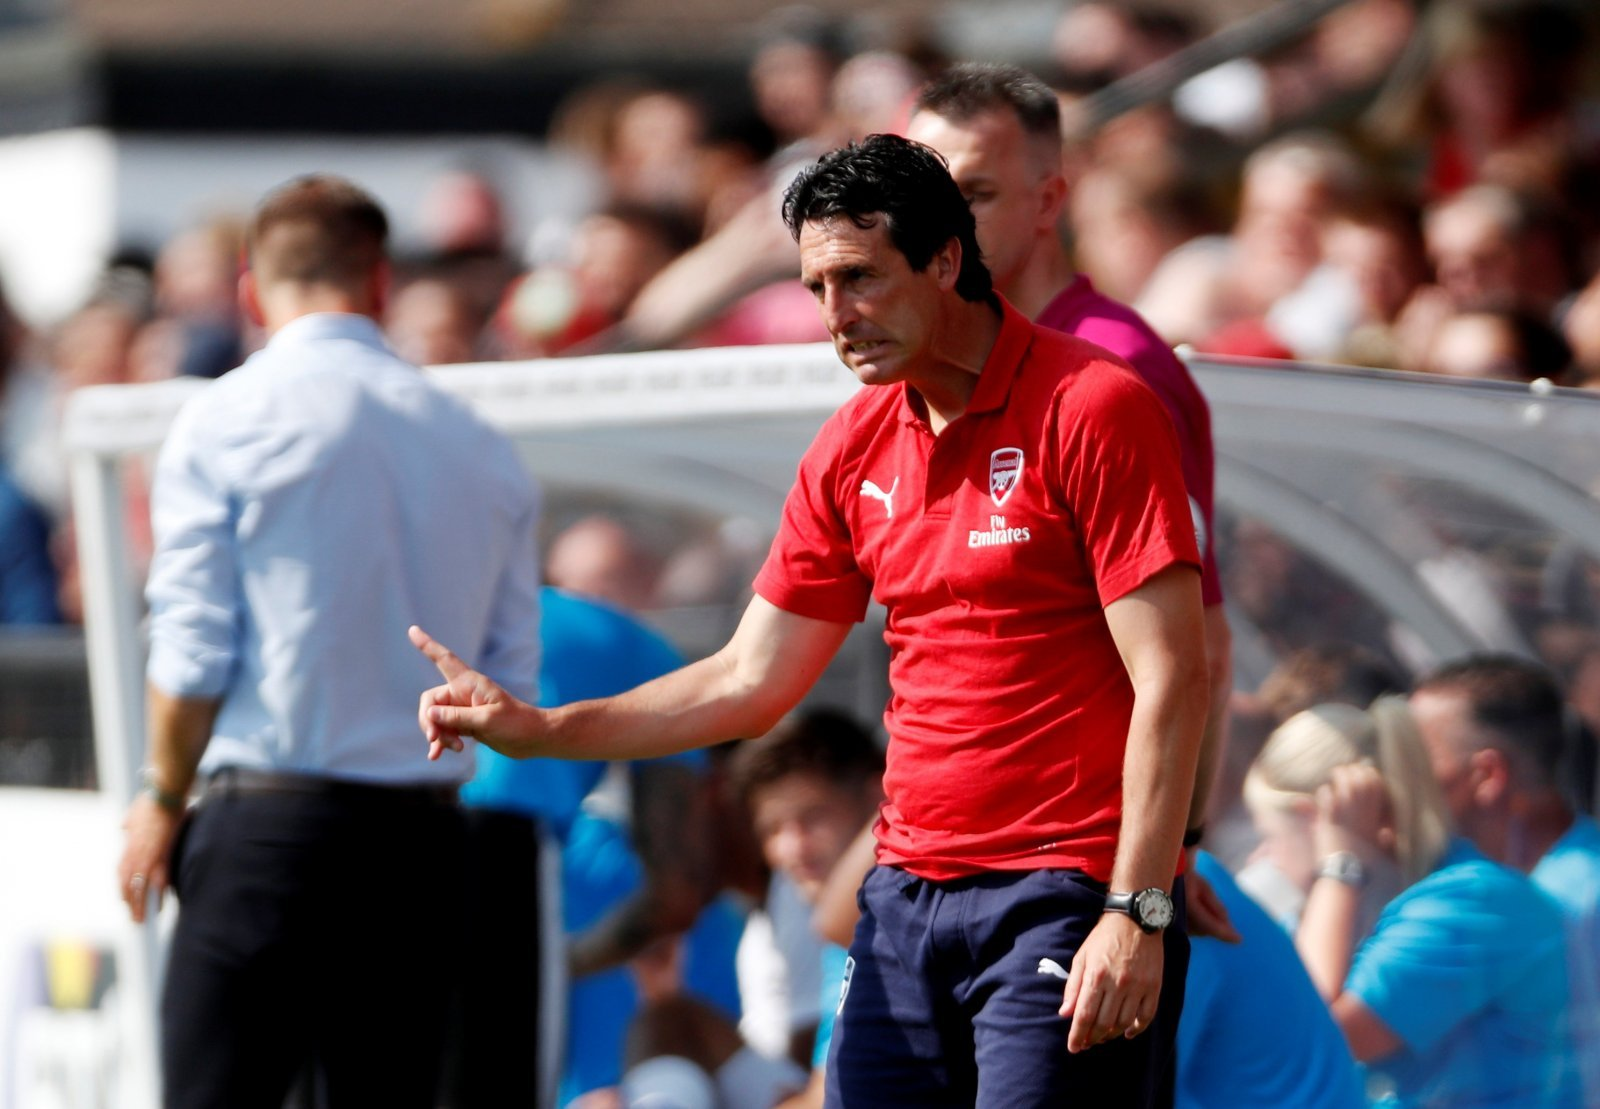 Emery is now facing the toughest test of his Arsenal tenure to date – agreed?